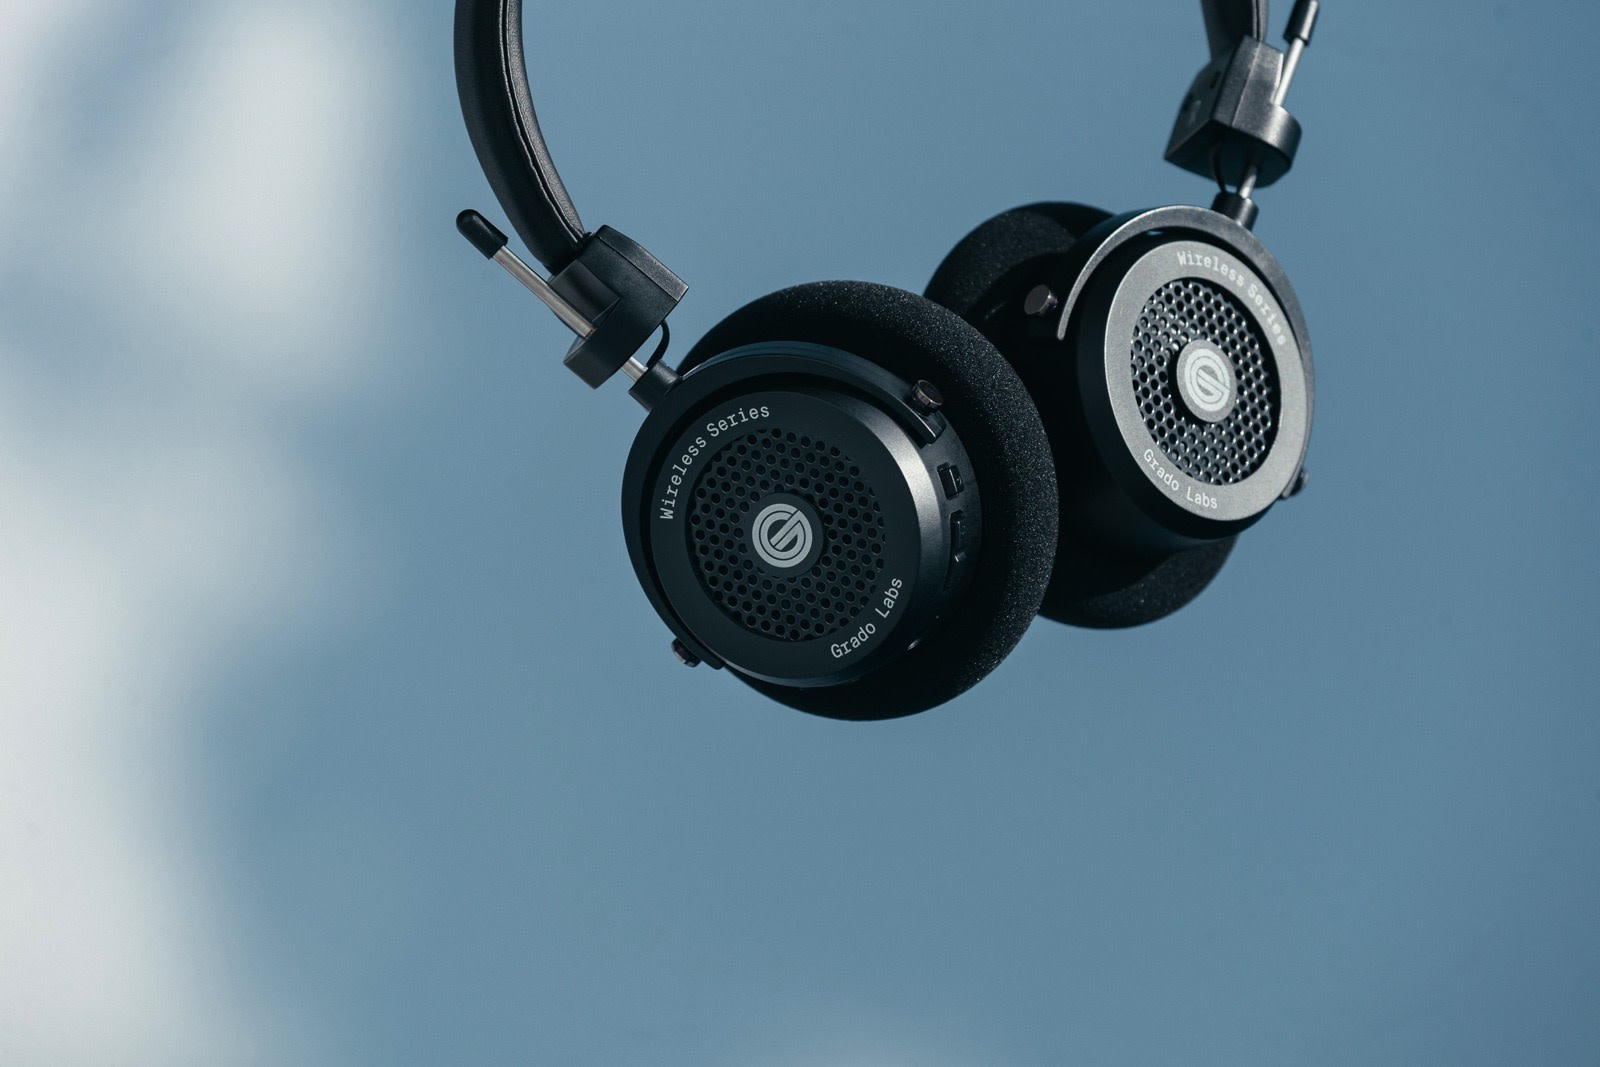 fa4f63dfcd1 Grado also says it reduced the escaping sound by 60 percent over its wired  headphones, thanks to redesigned speaker housings and internals.